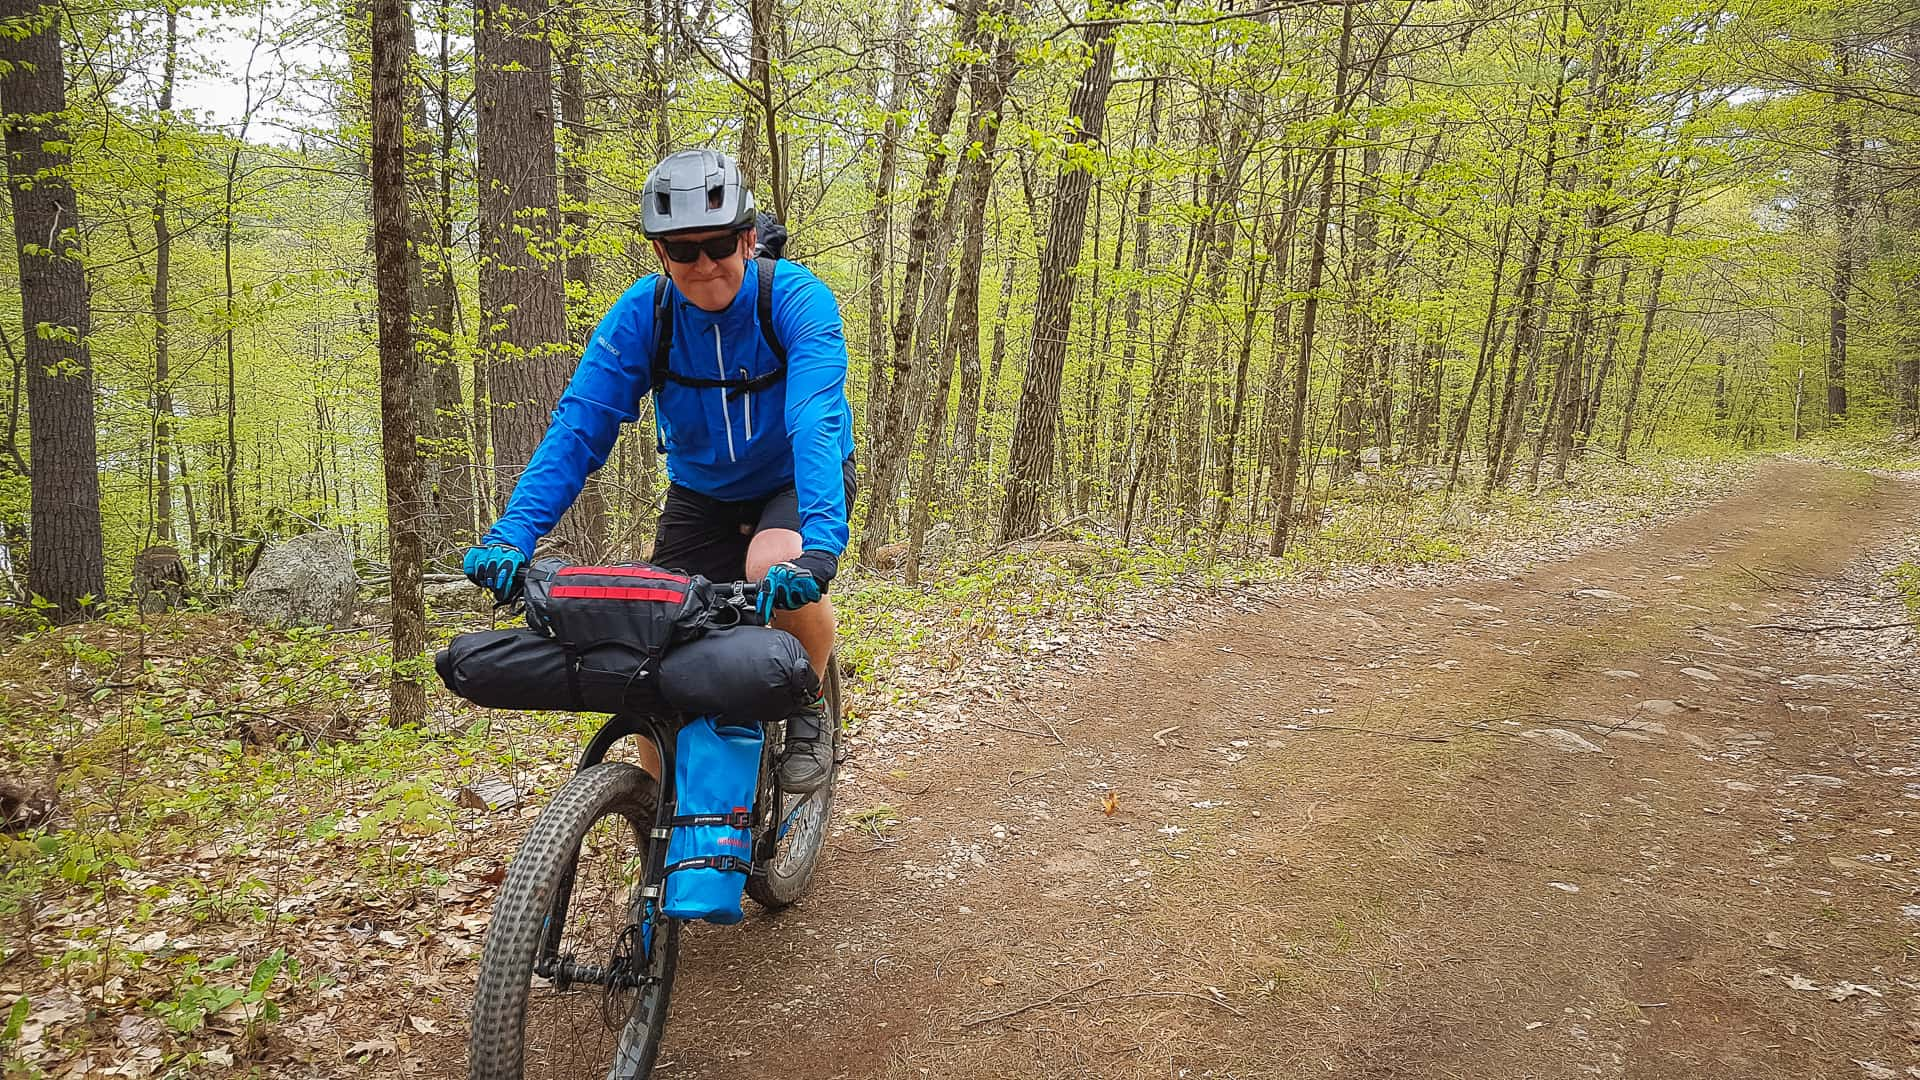 Bikepacking Calabogie area Ontario with Panorama cycles